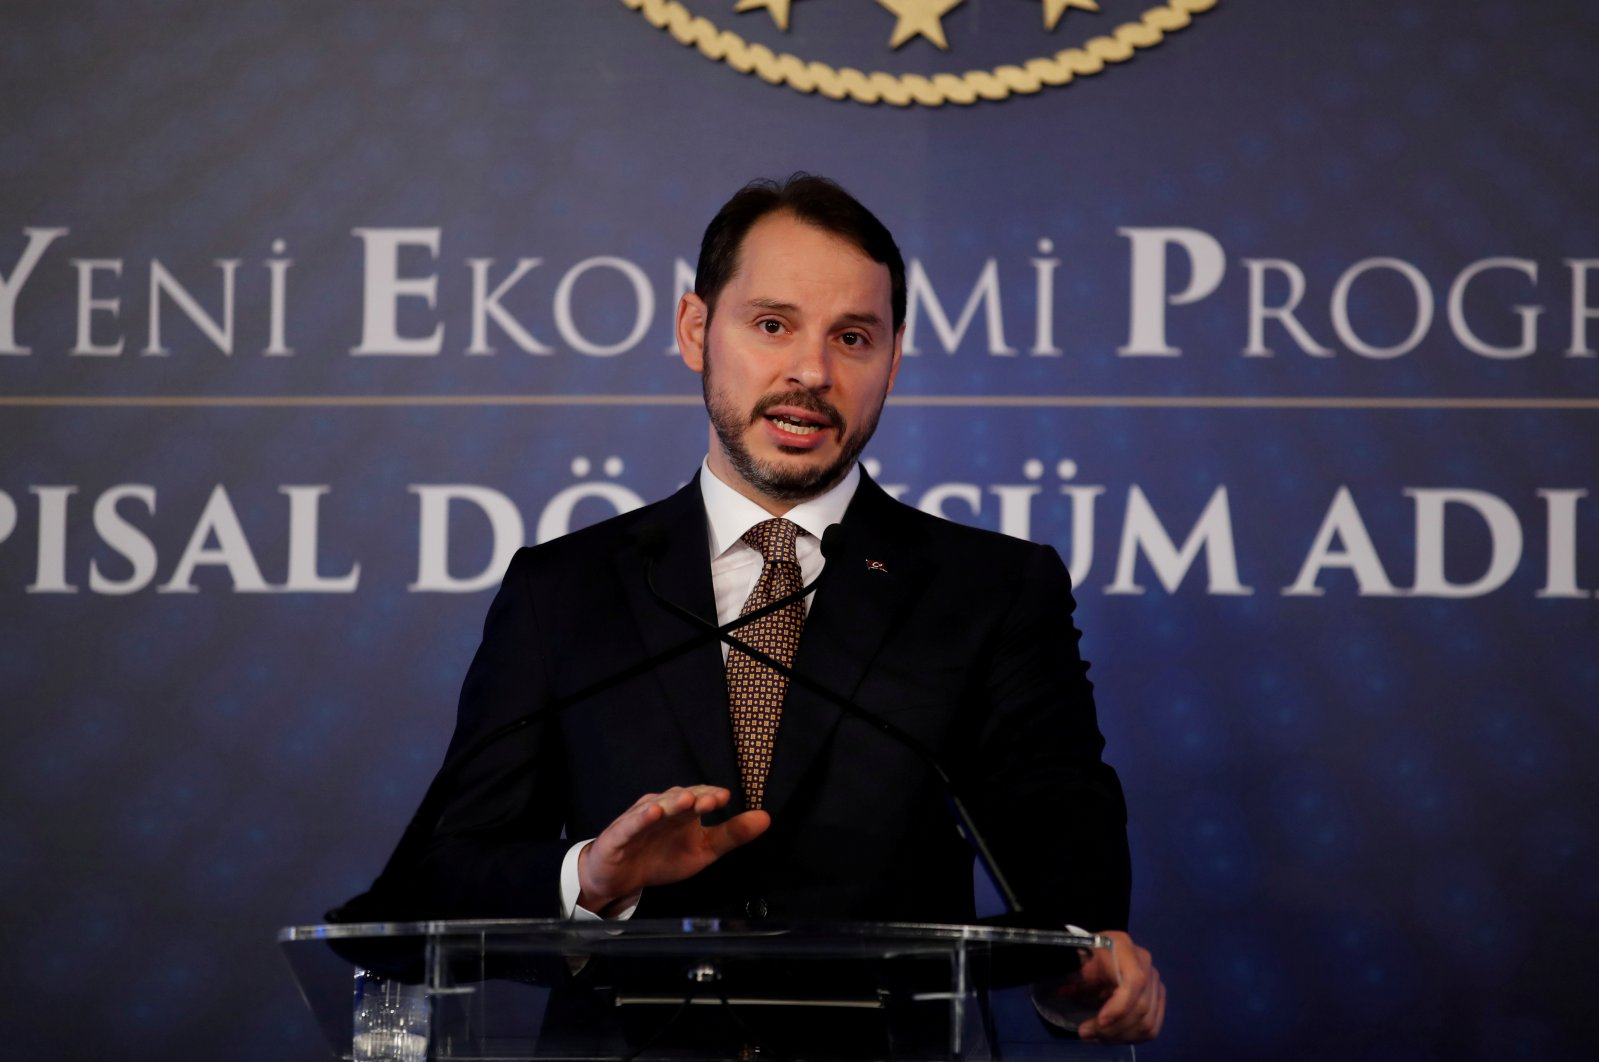 Treasury and Finance Minister Berat Albayrak attends a news conference in Istanbul, Turkey, April 10, 2019. (Reuters Photo)